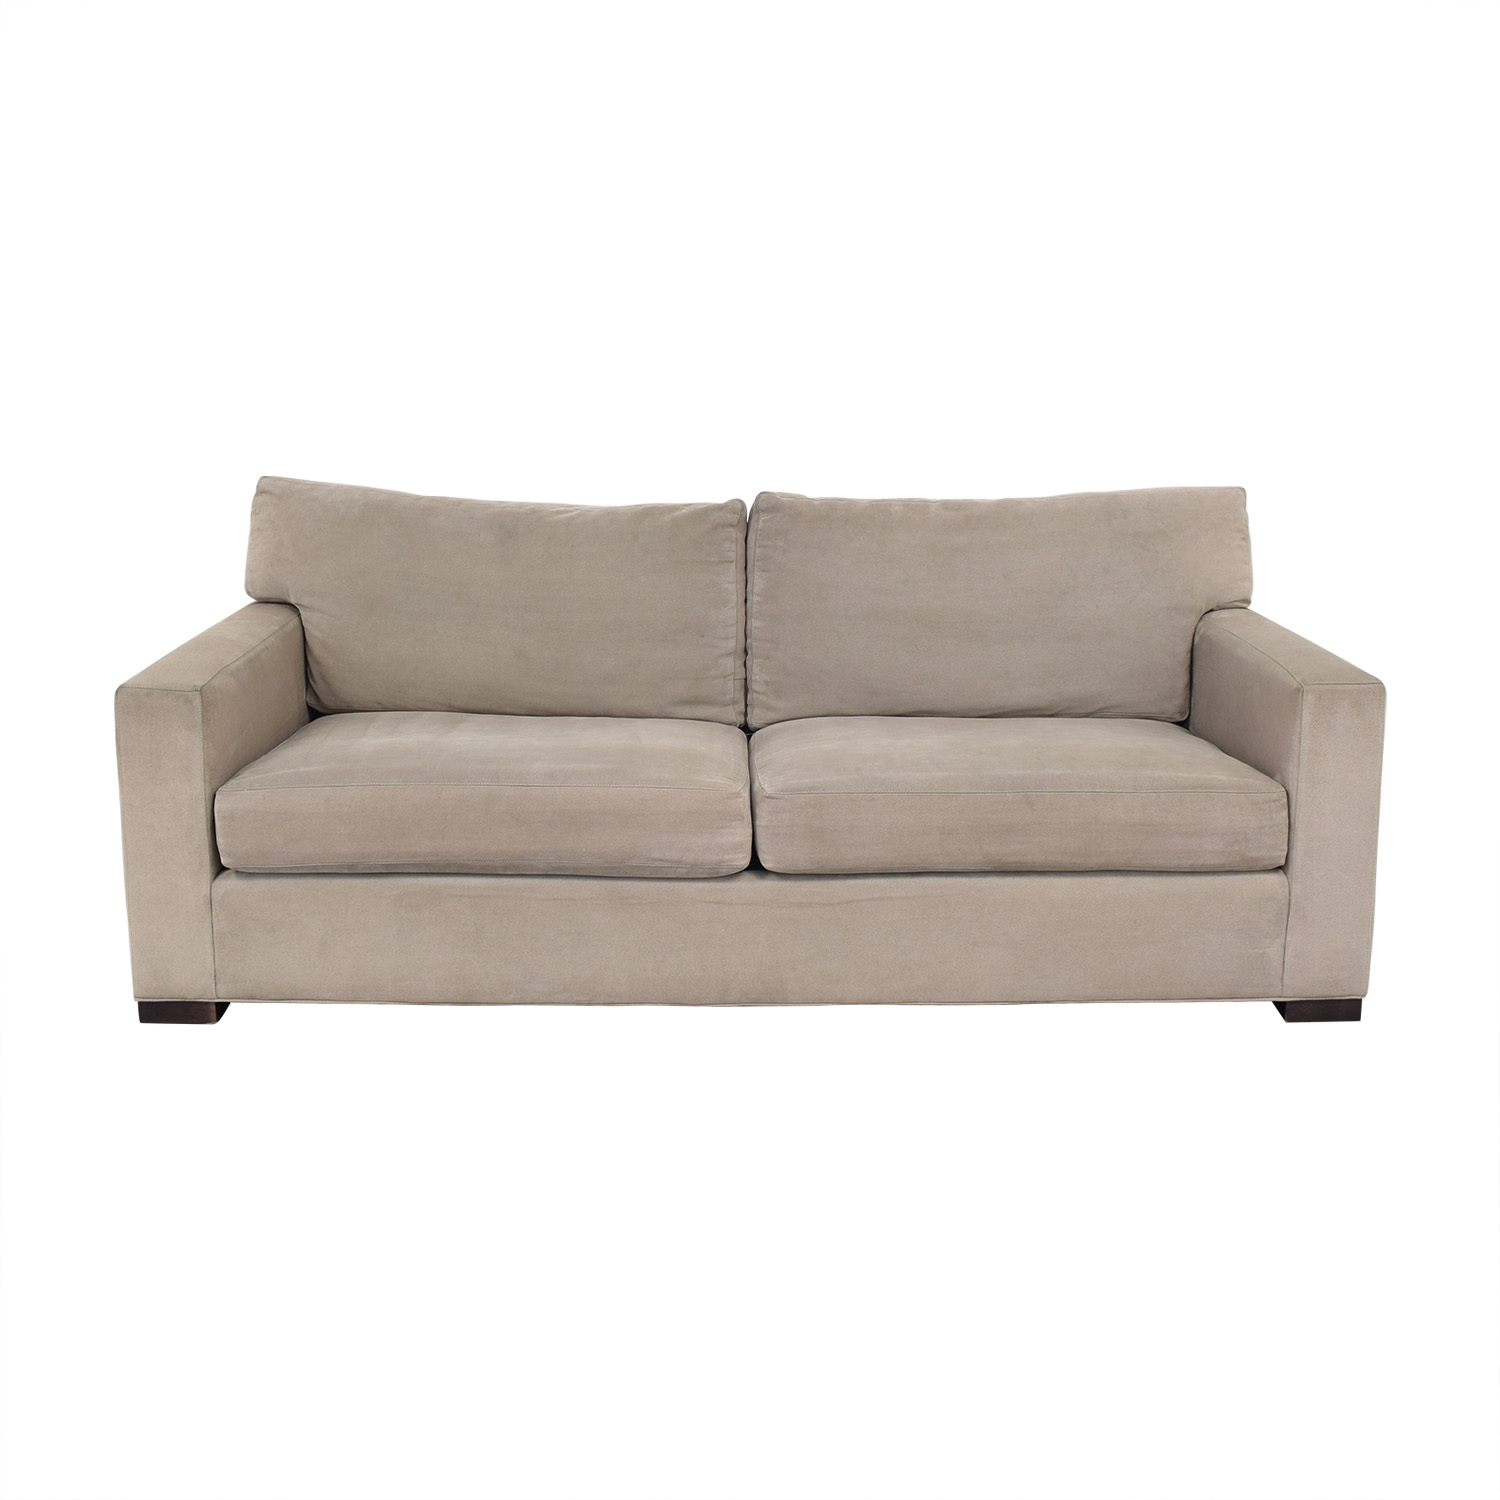 Crate & Barrel Crate & Barrel Axis II Sofa Sofas